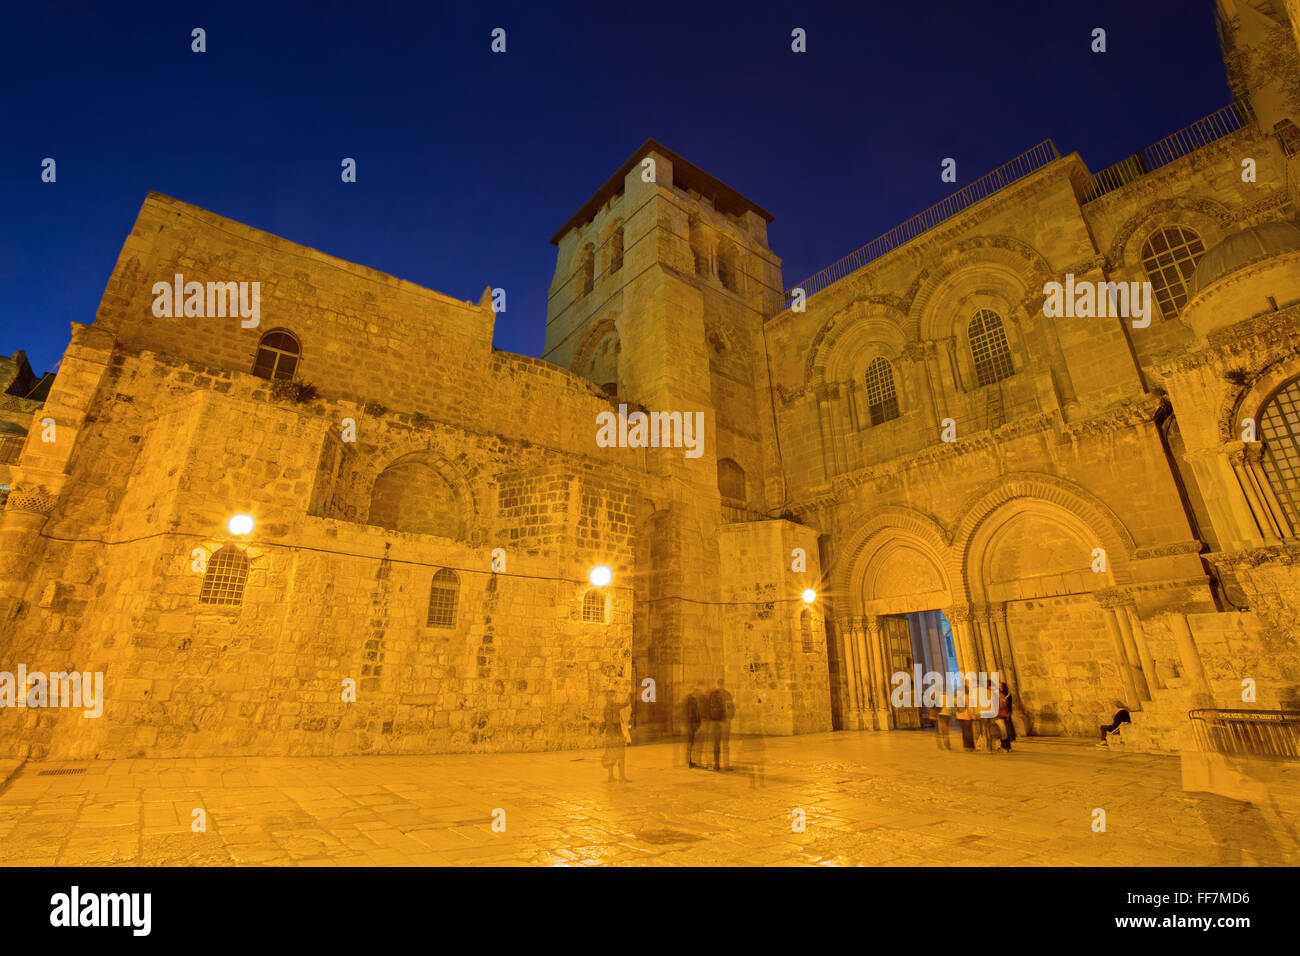 Jerusalem - Church of the Holy Sepulchre at dusk - Stock Image